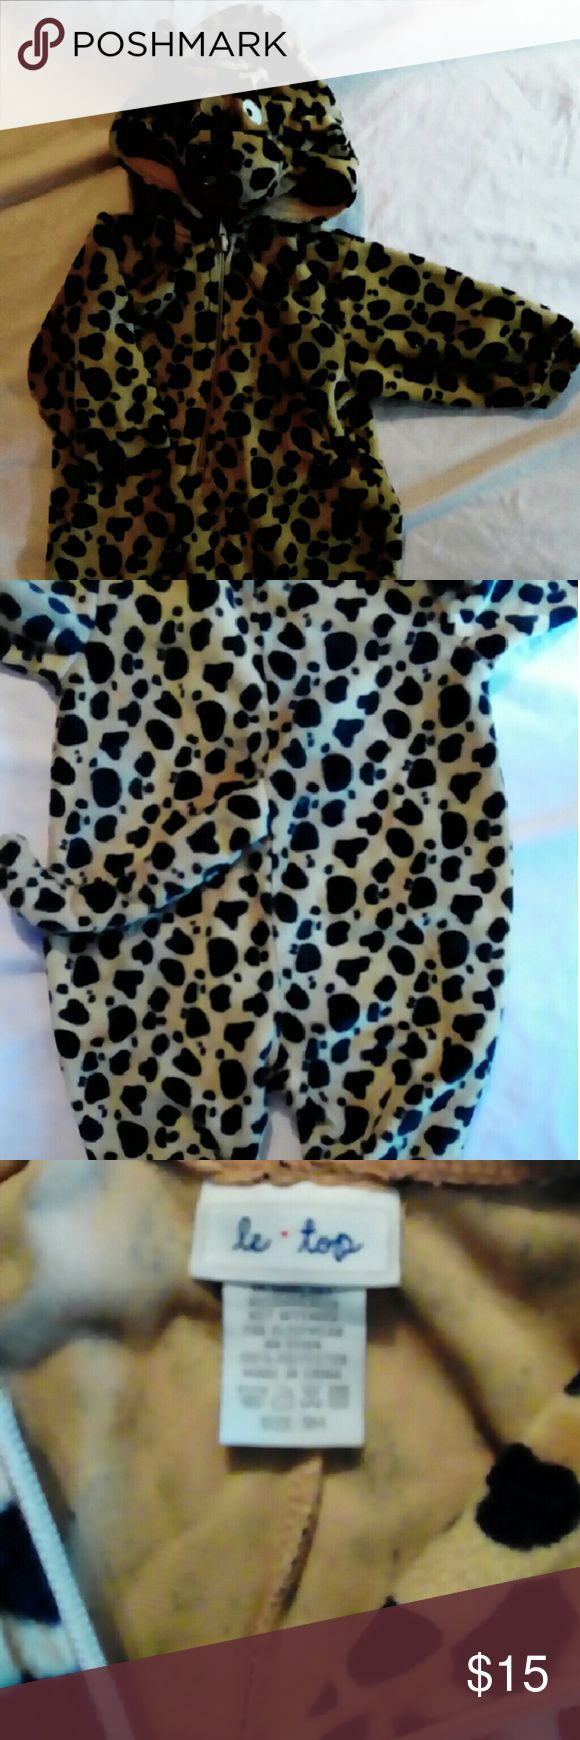 9mos. 1PC, Cheetah outfit with ears face & tail Soo adorable!  Costume or just because!! Gently worn 100% poly One Pieces Footies